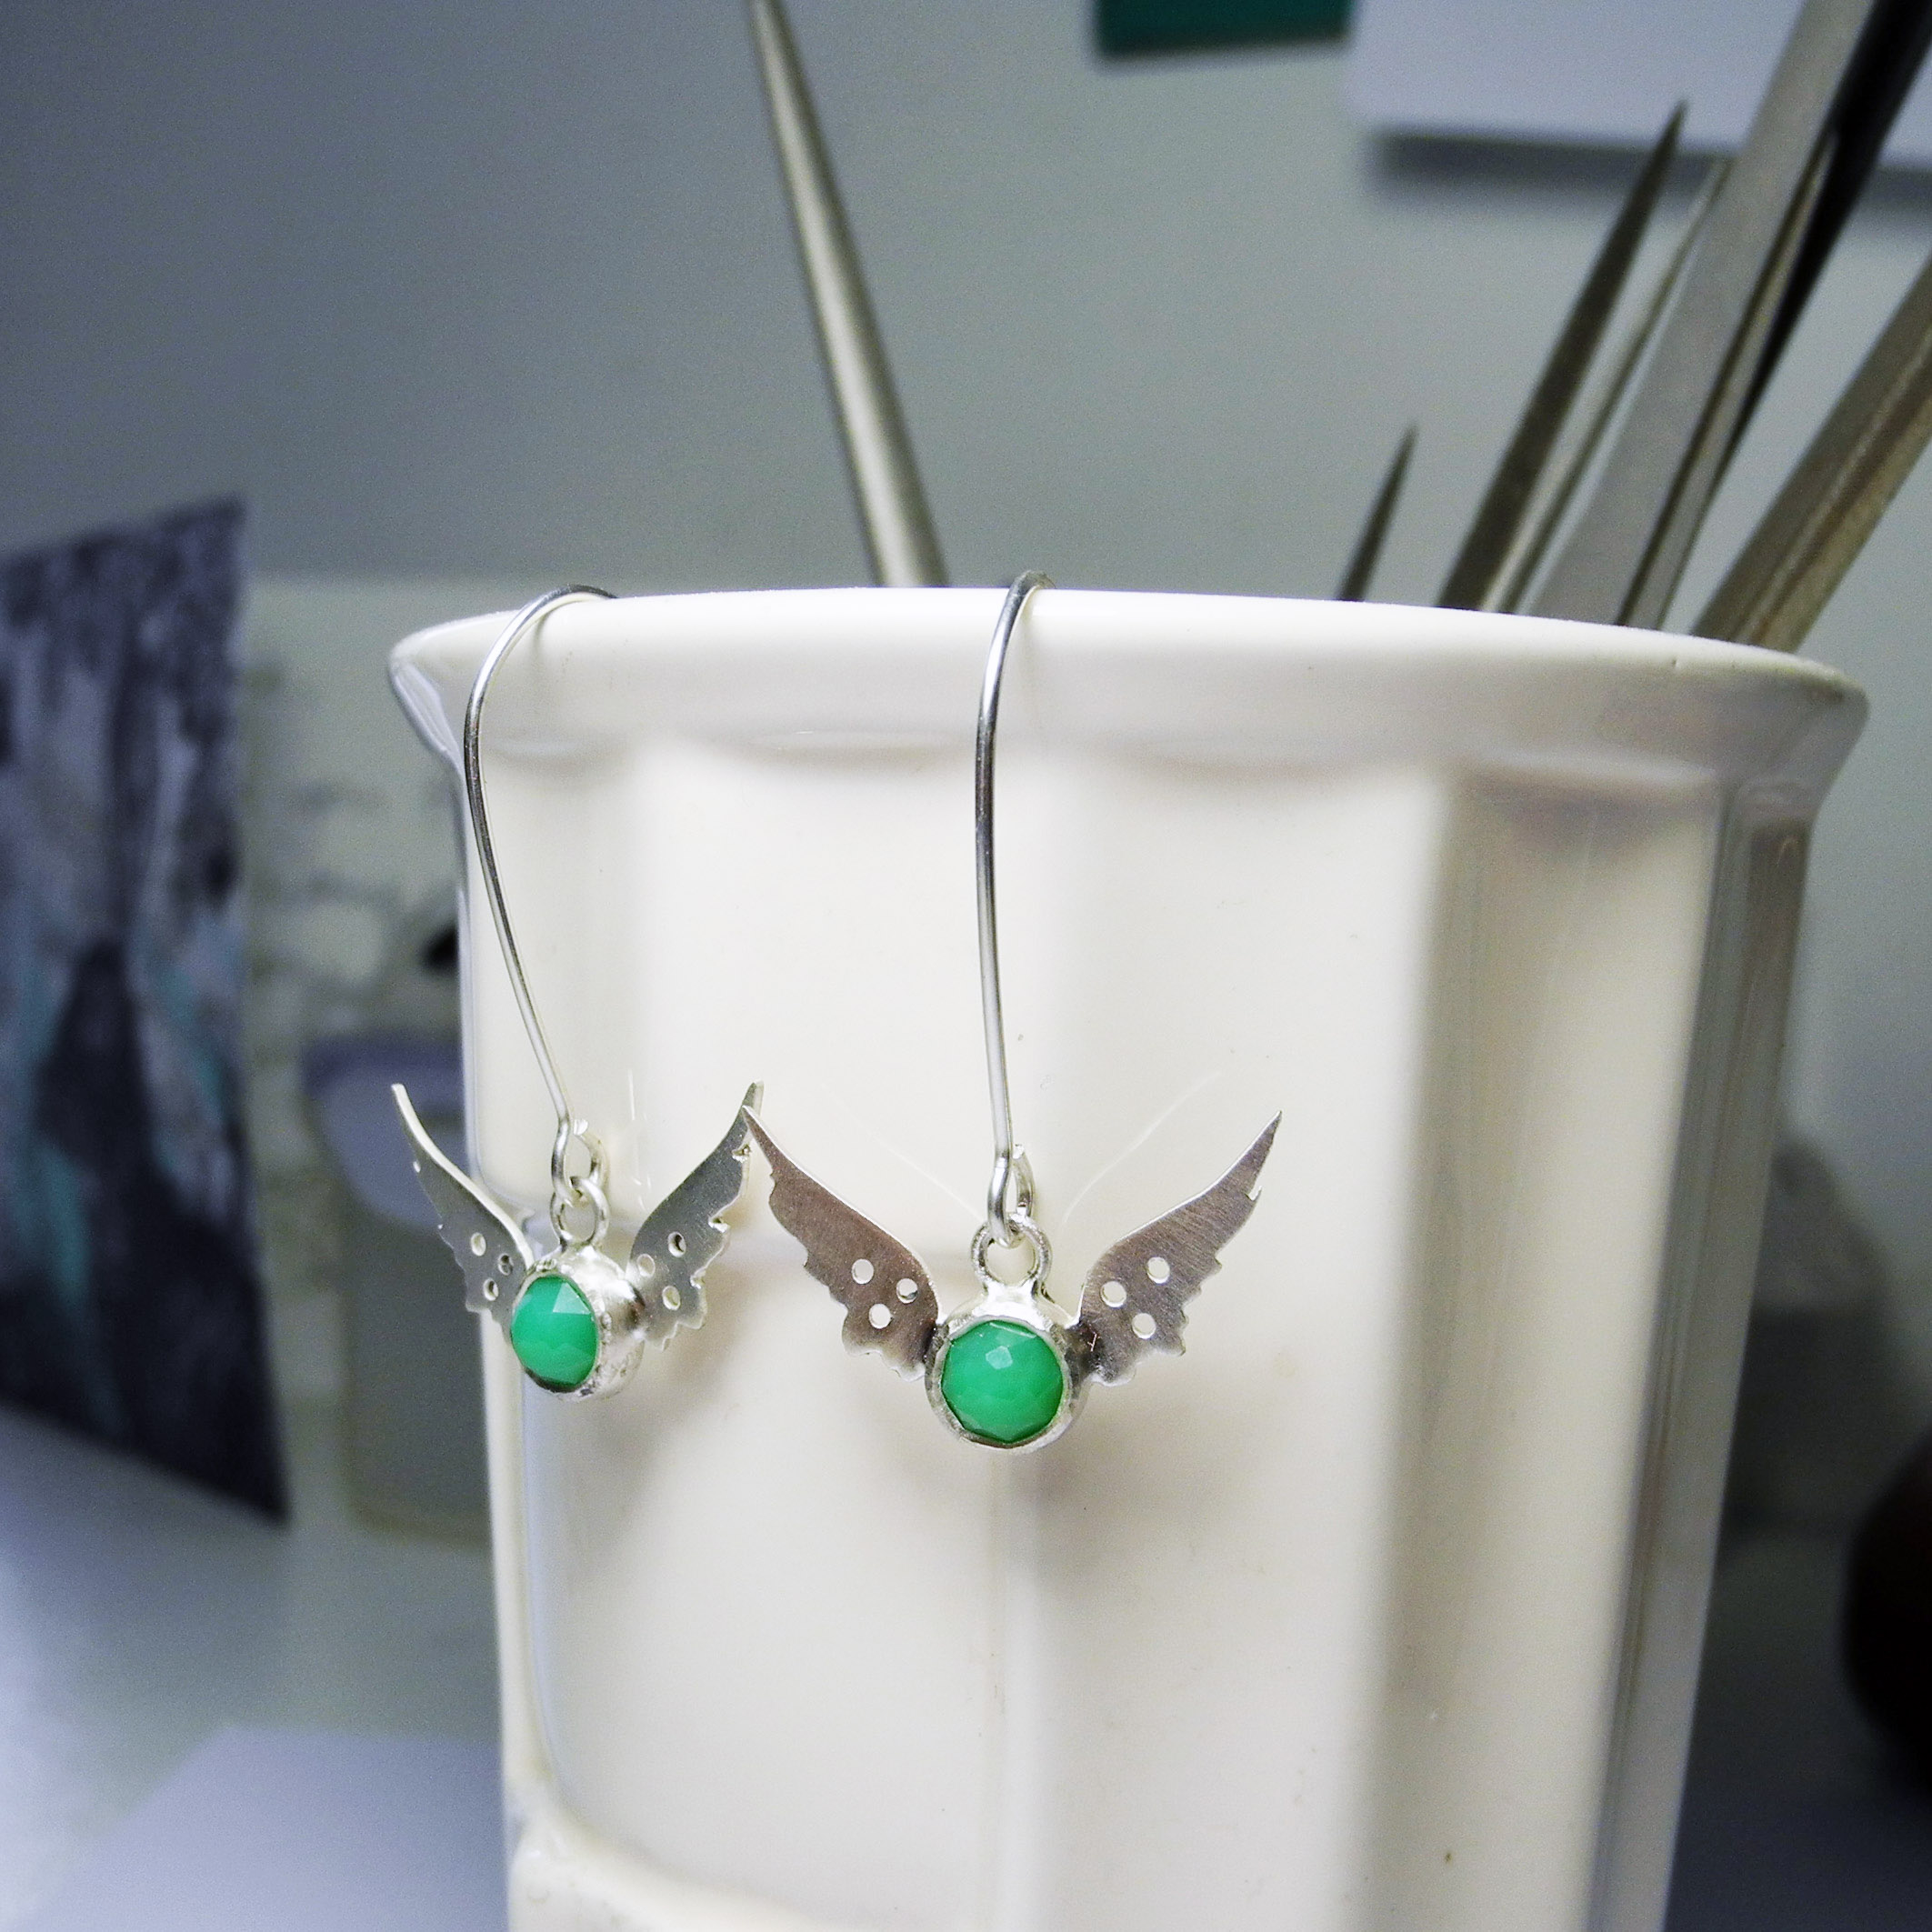 Tiny Hermes Wings earrings with chrysoprase